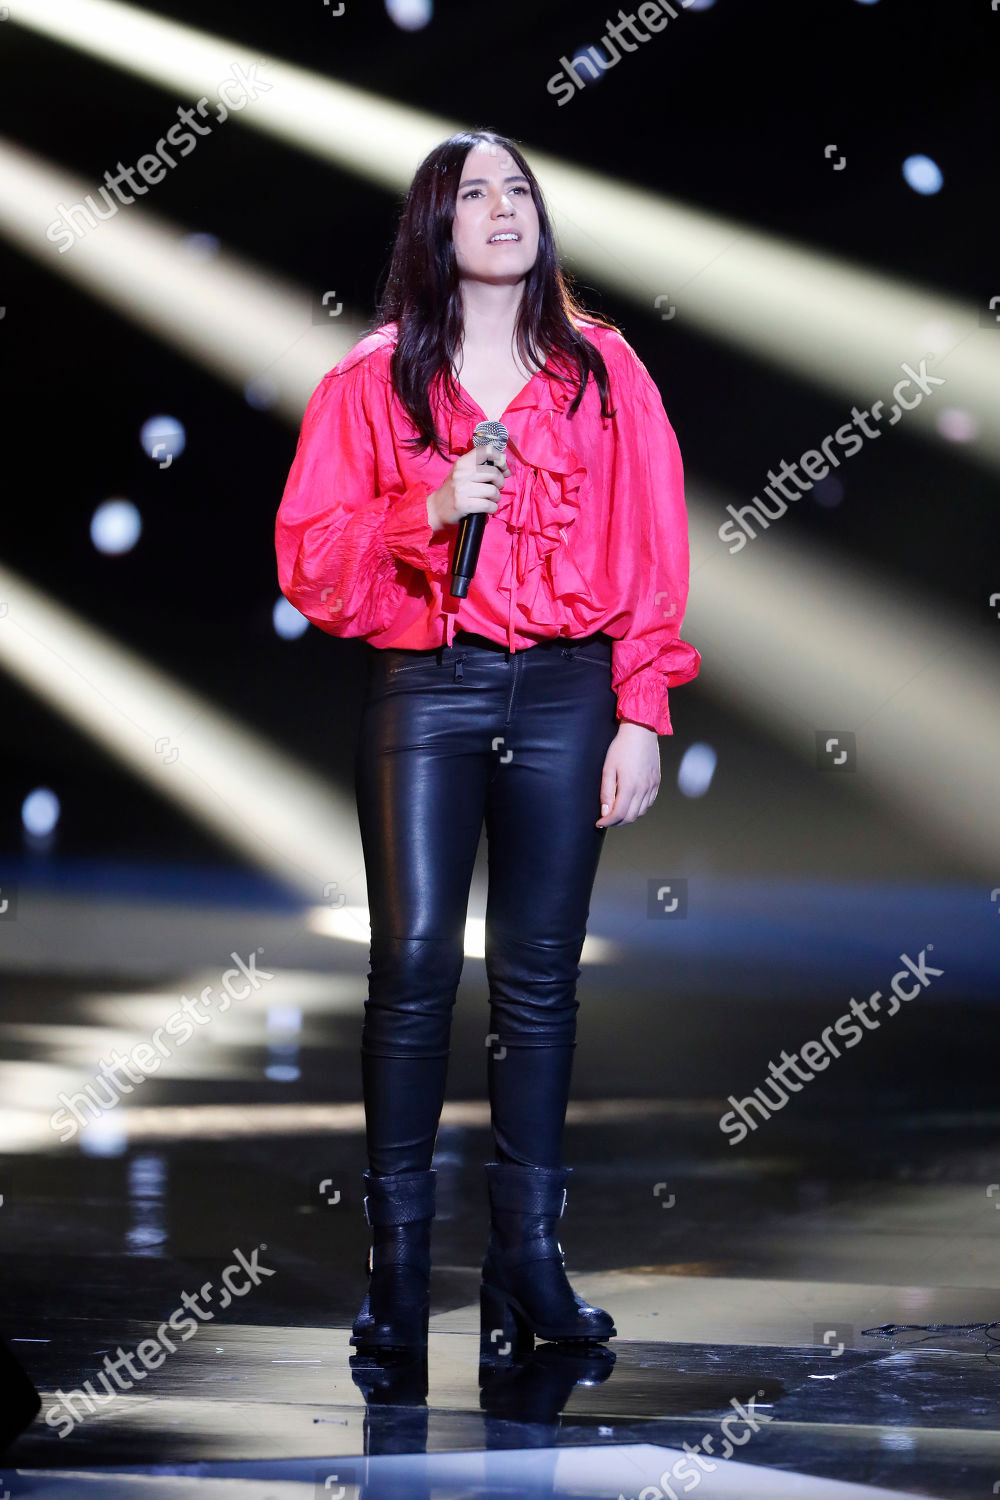 French singer Izia Higelin performs on stage Editorial Stock Photo